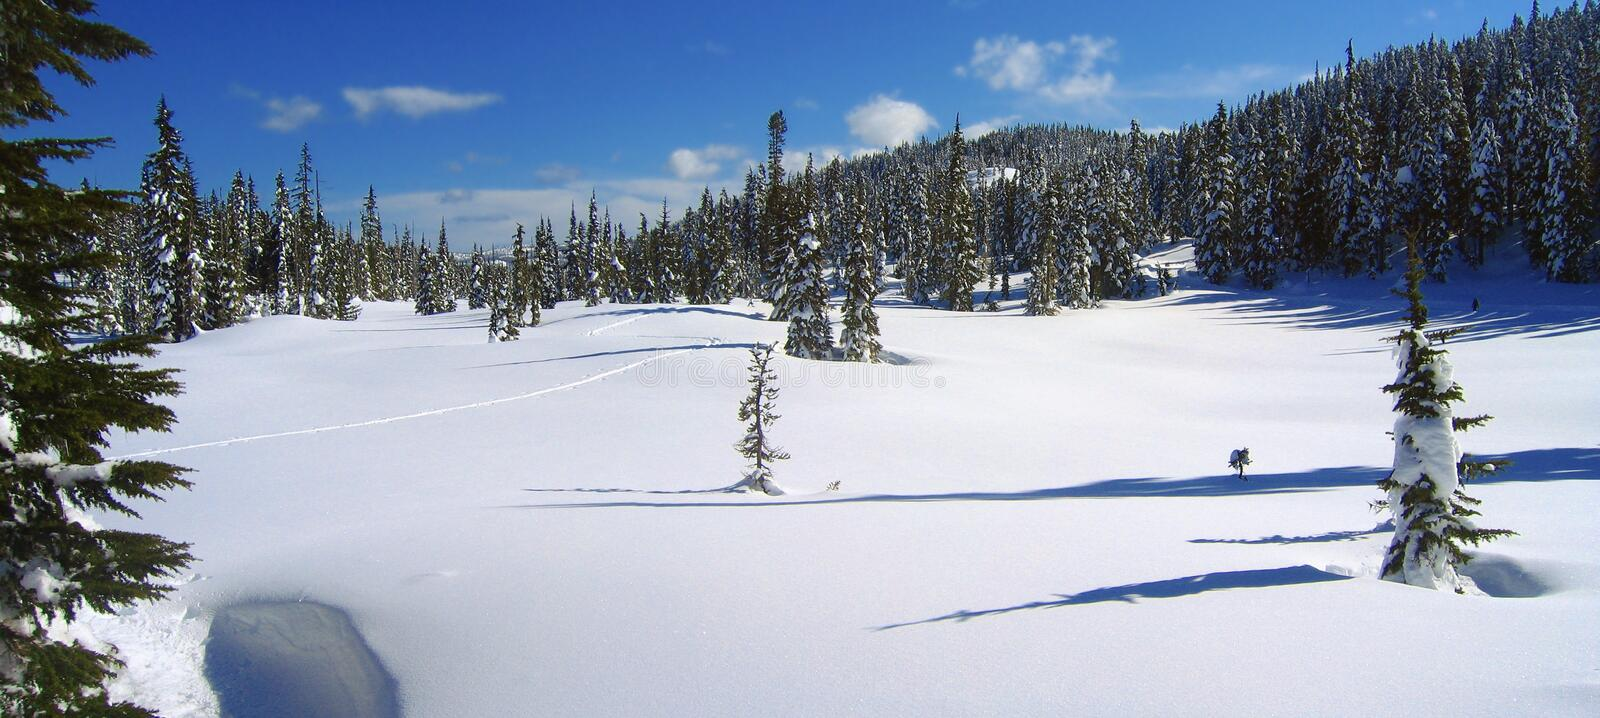 Ski Track in Paradise Meadows, Forbidden Plateau, Strathcona Provincial Park, Vancouver Island, British Columbia, Canada stock photos